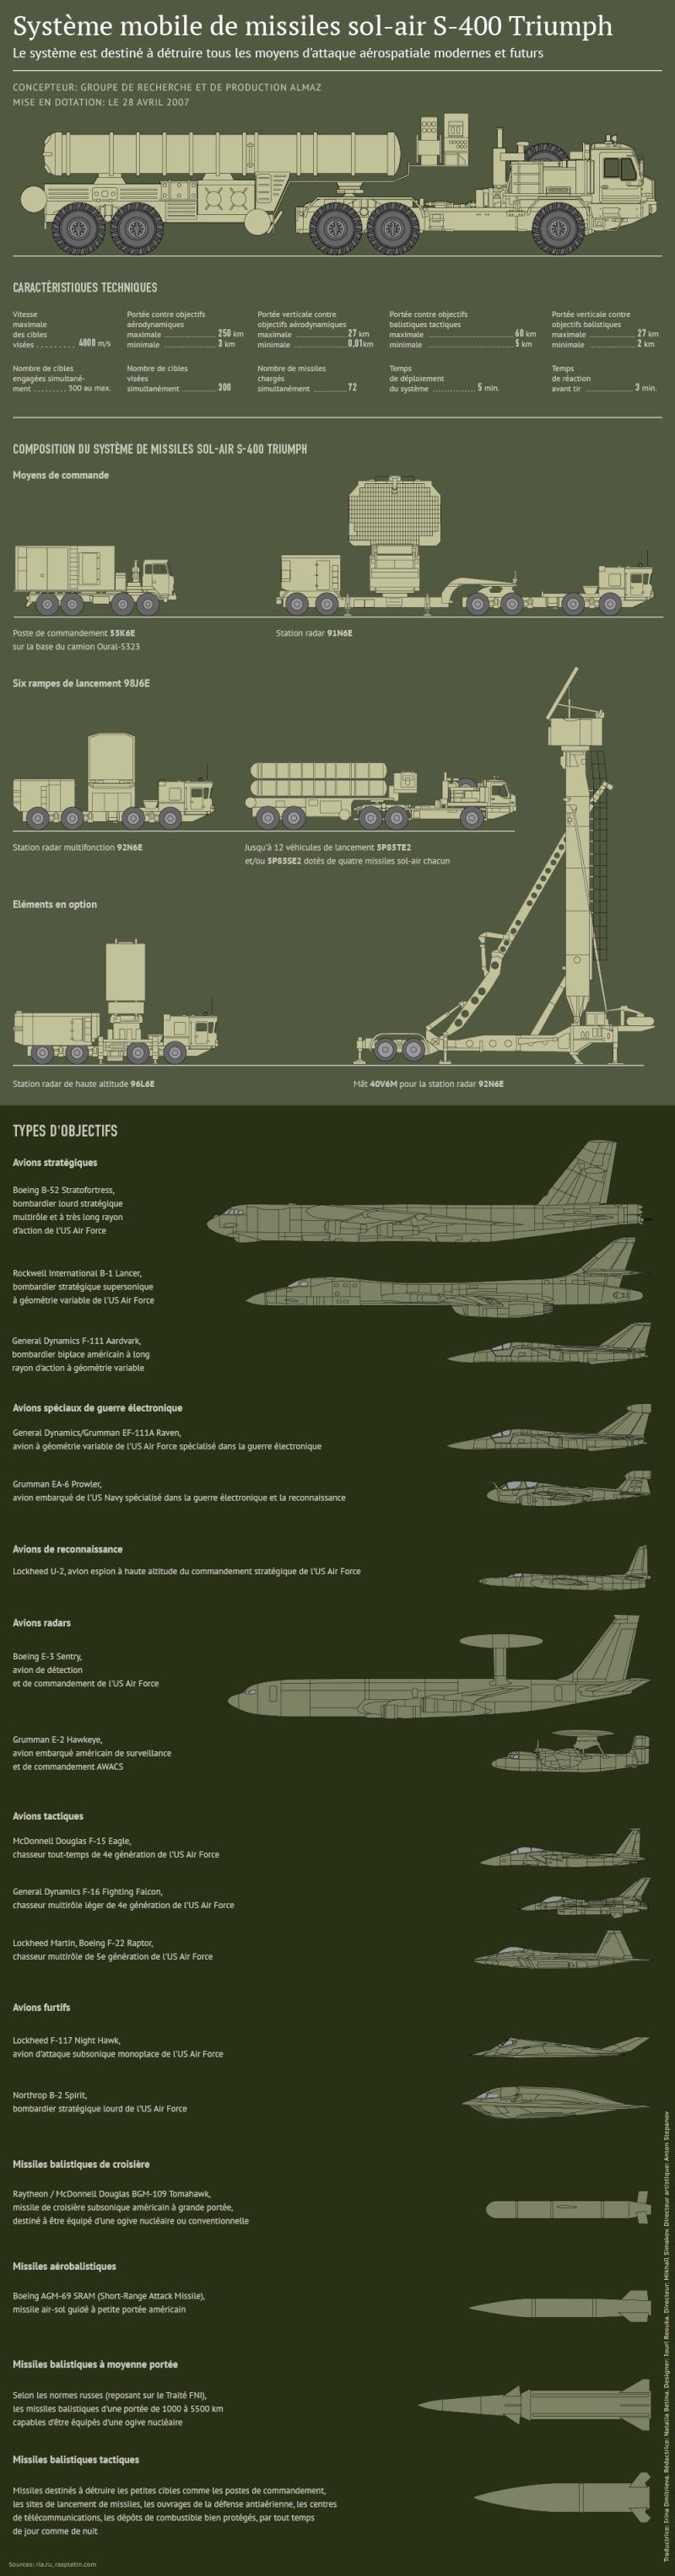 Armée Russe / Armed Forces of the Russian Federation - Page 11 0b211